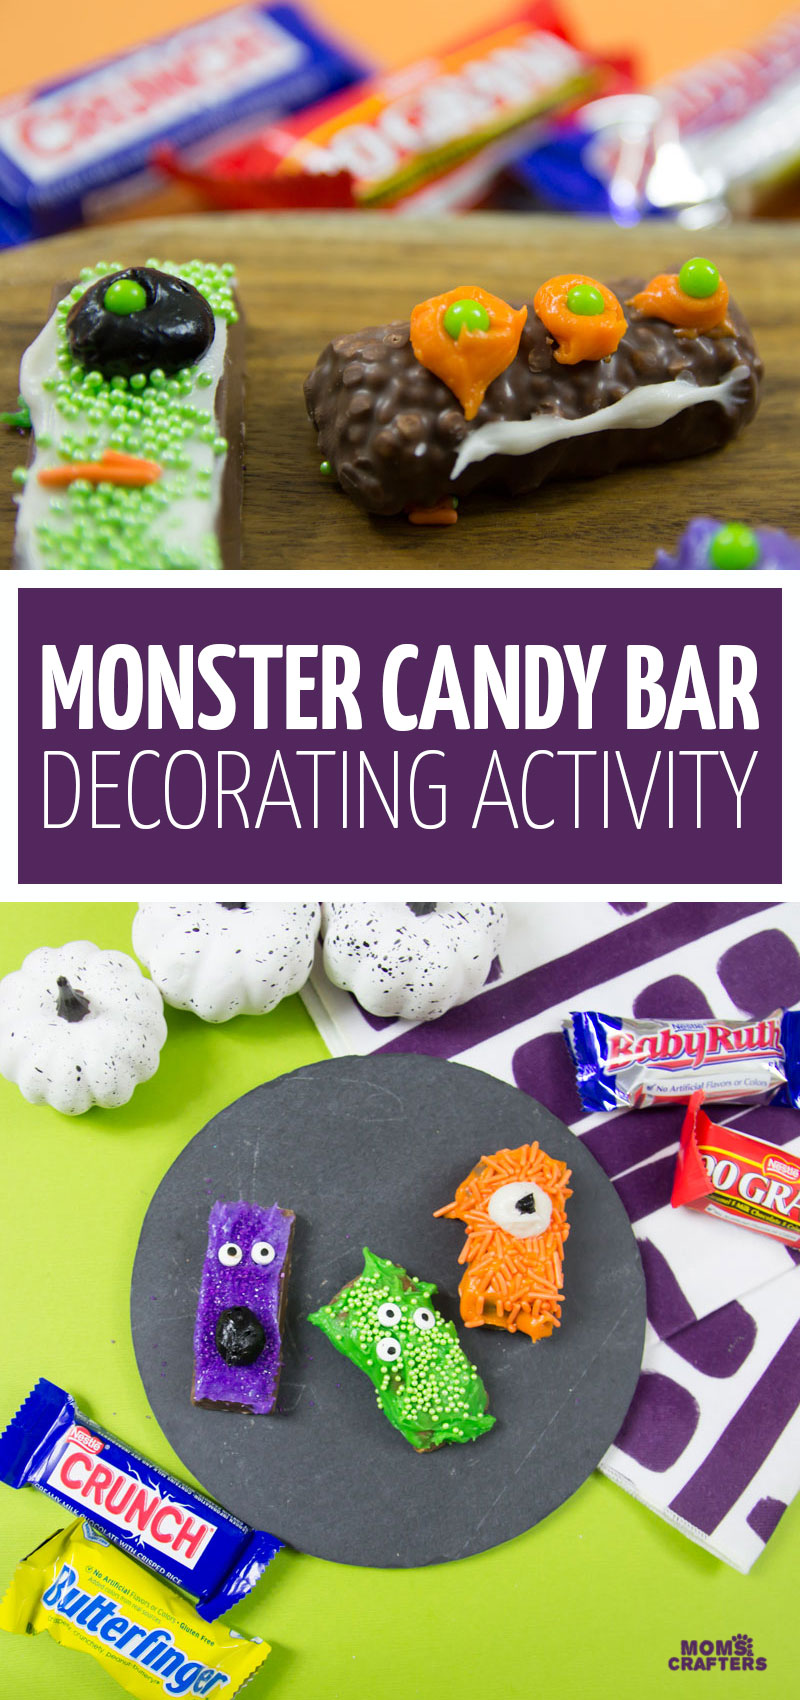 Click for a super fun monster candy bar decorating activity, a fun recipe using Butterfinger chocolate and more! This open-ended cooking with kids activity is fun for Halloween or a monster birthday party.